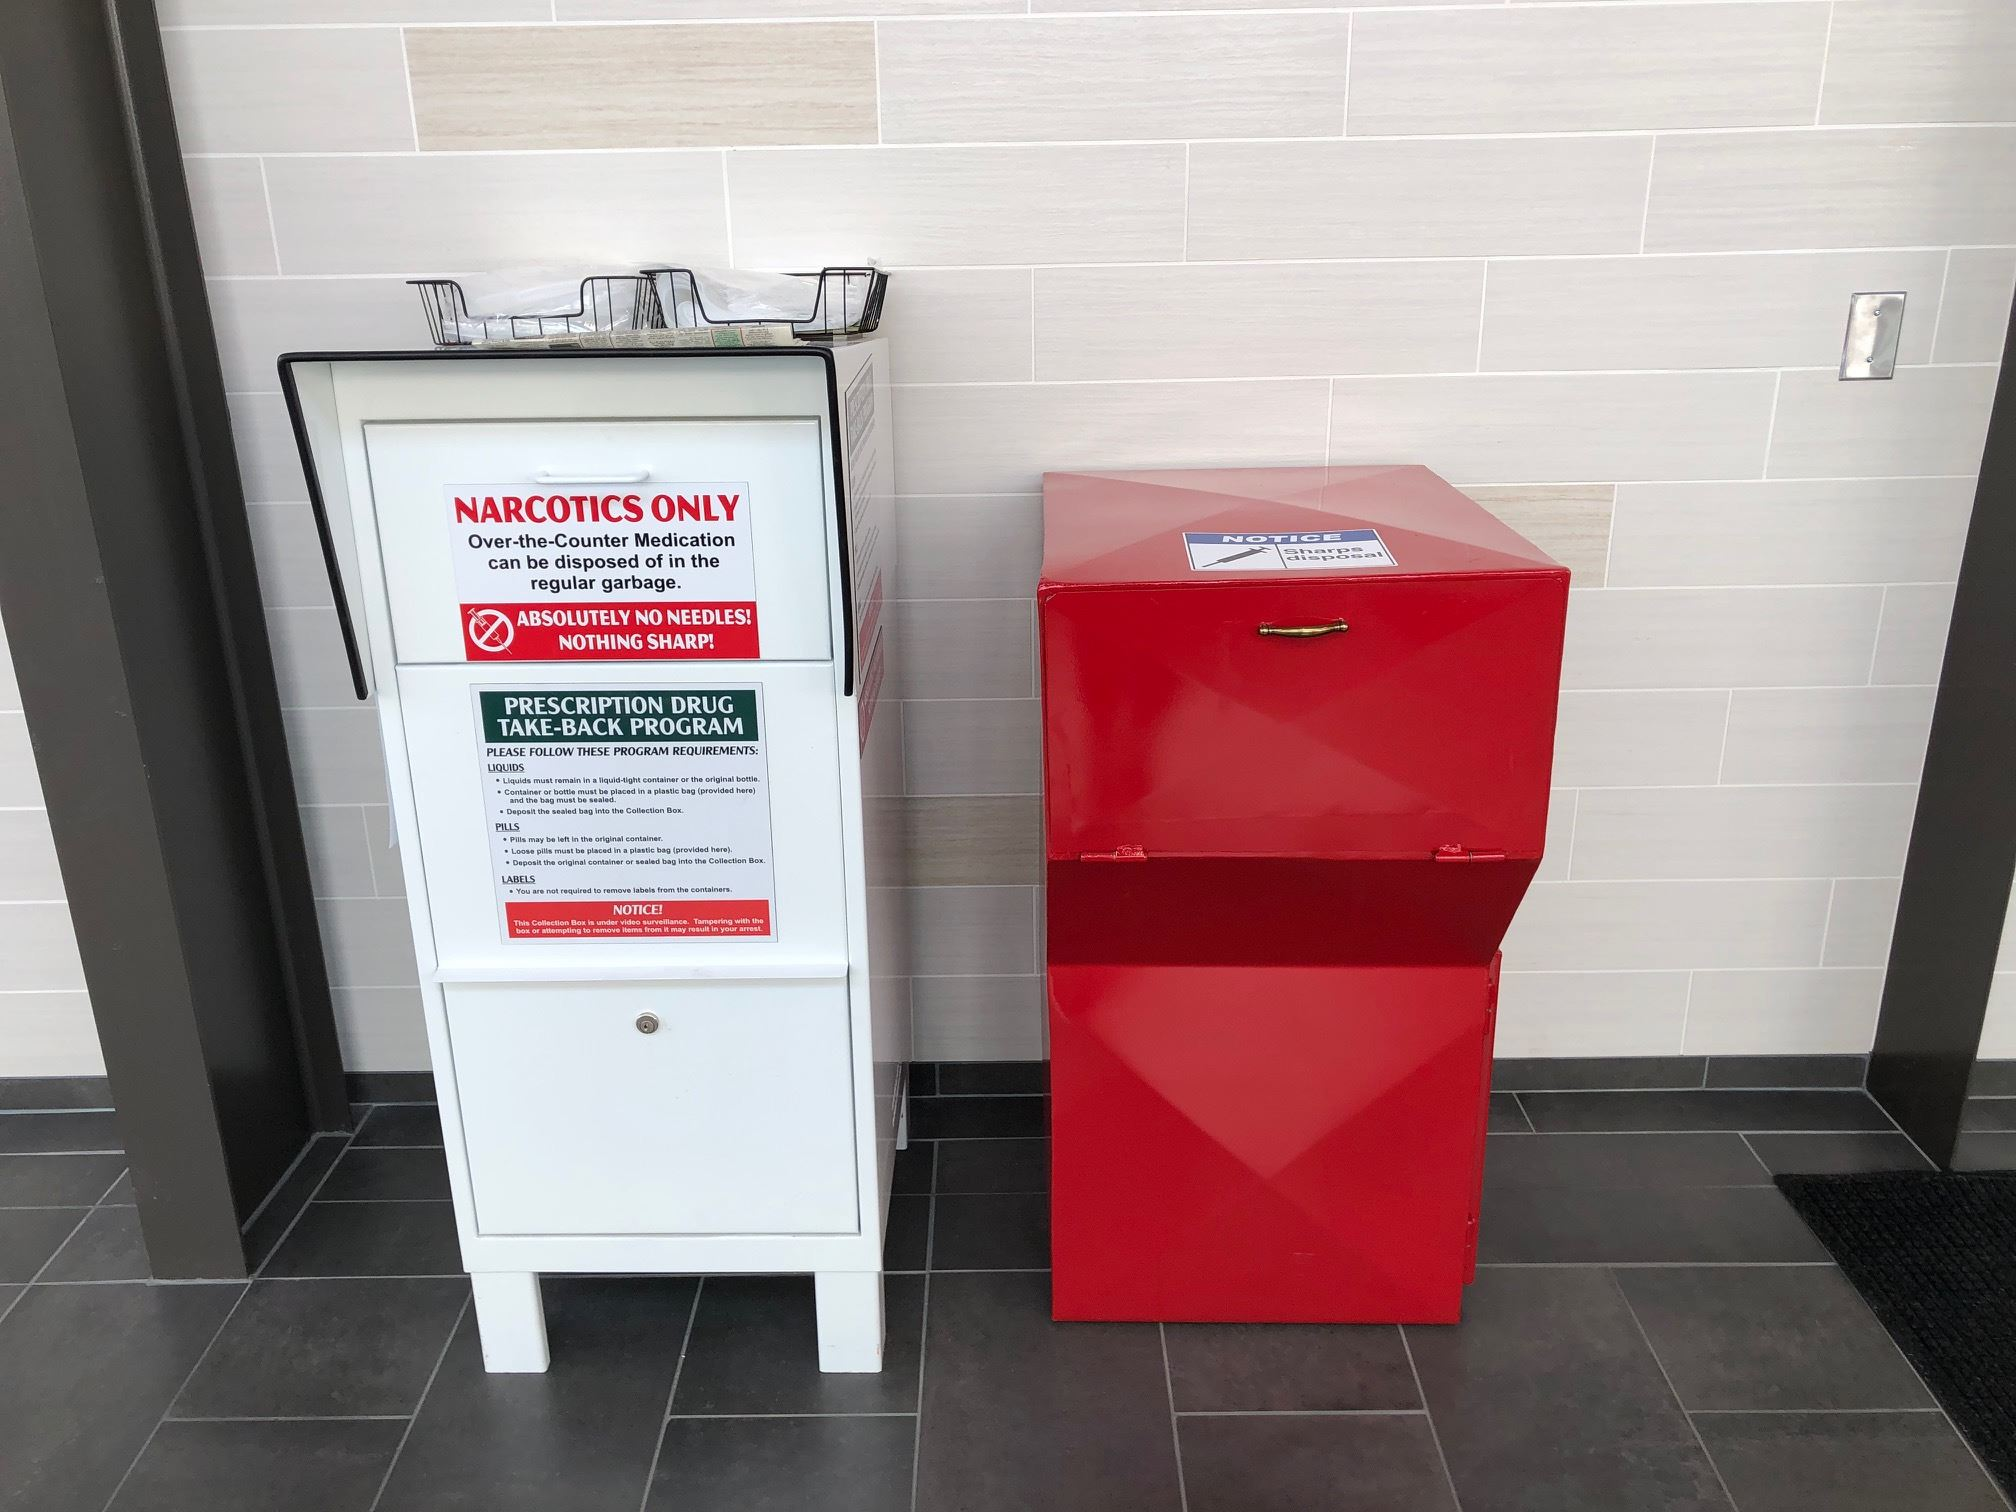 Medication and sharps disposal boxes are now located in the lobby of the West Fargo Police Department.